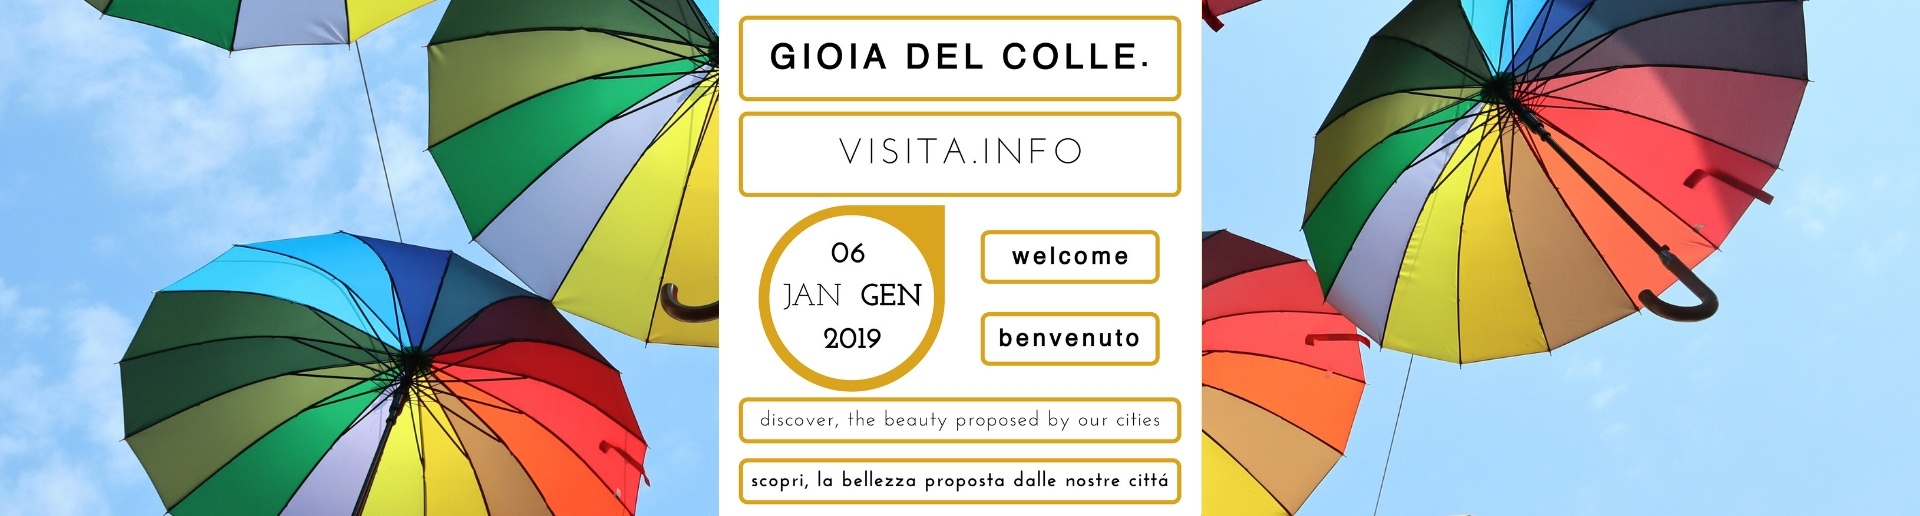 Sunday 6th January 2019: plan your visit to Gioia del Colle (Bari, Puglia, Italy)